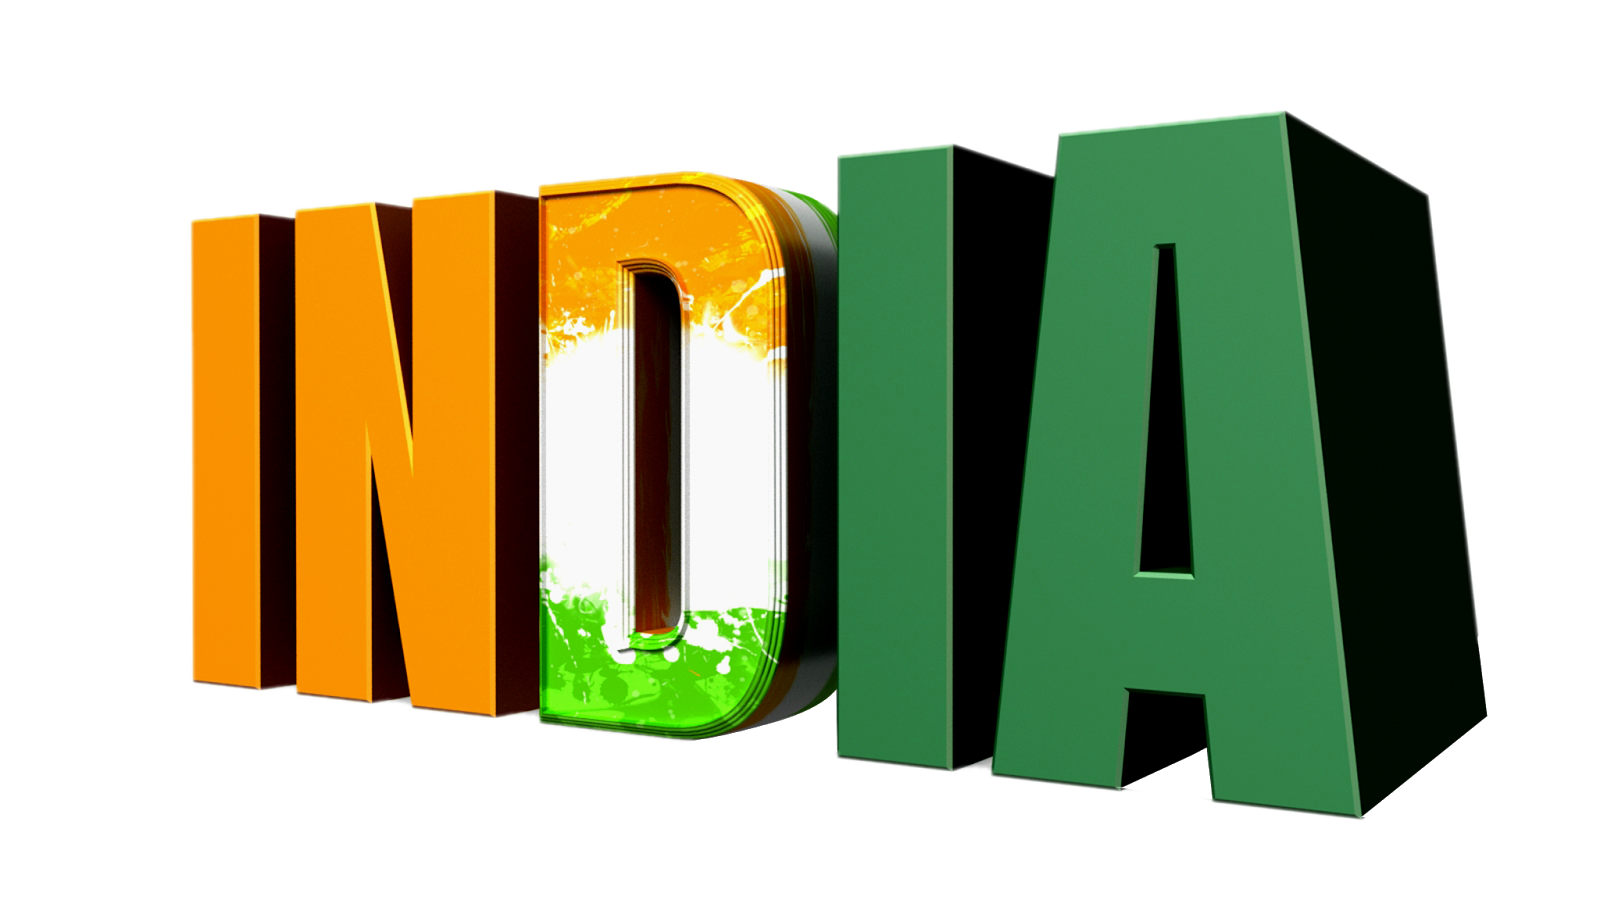 India transparent text. Indiana png hd images